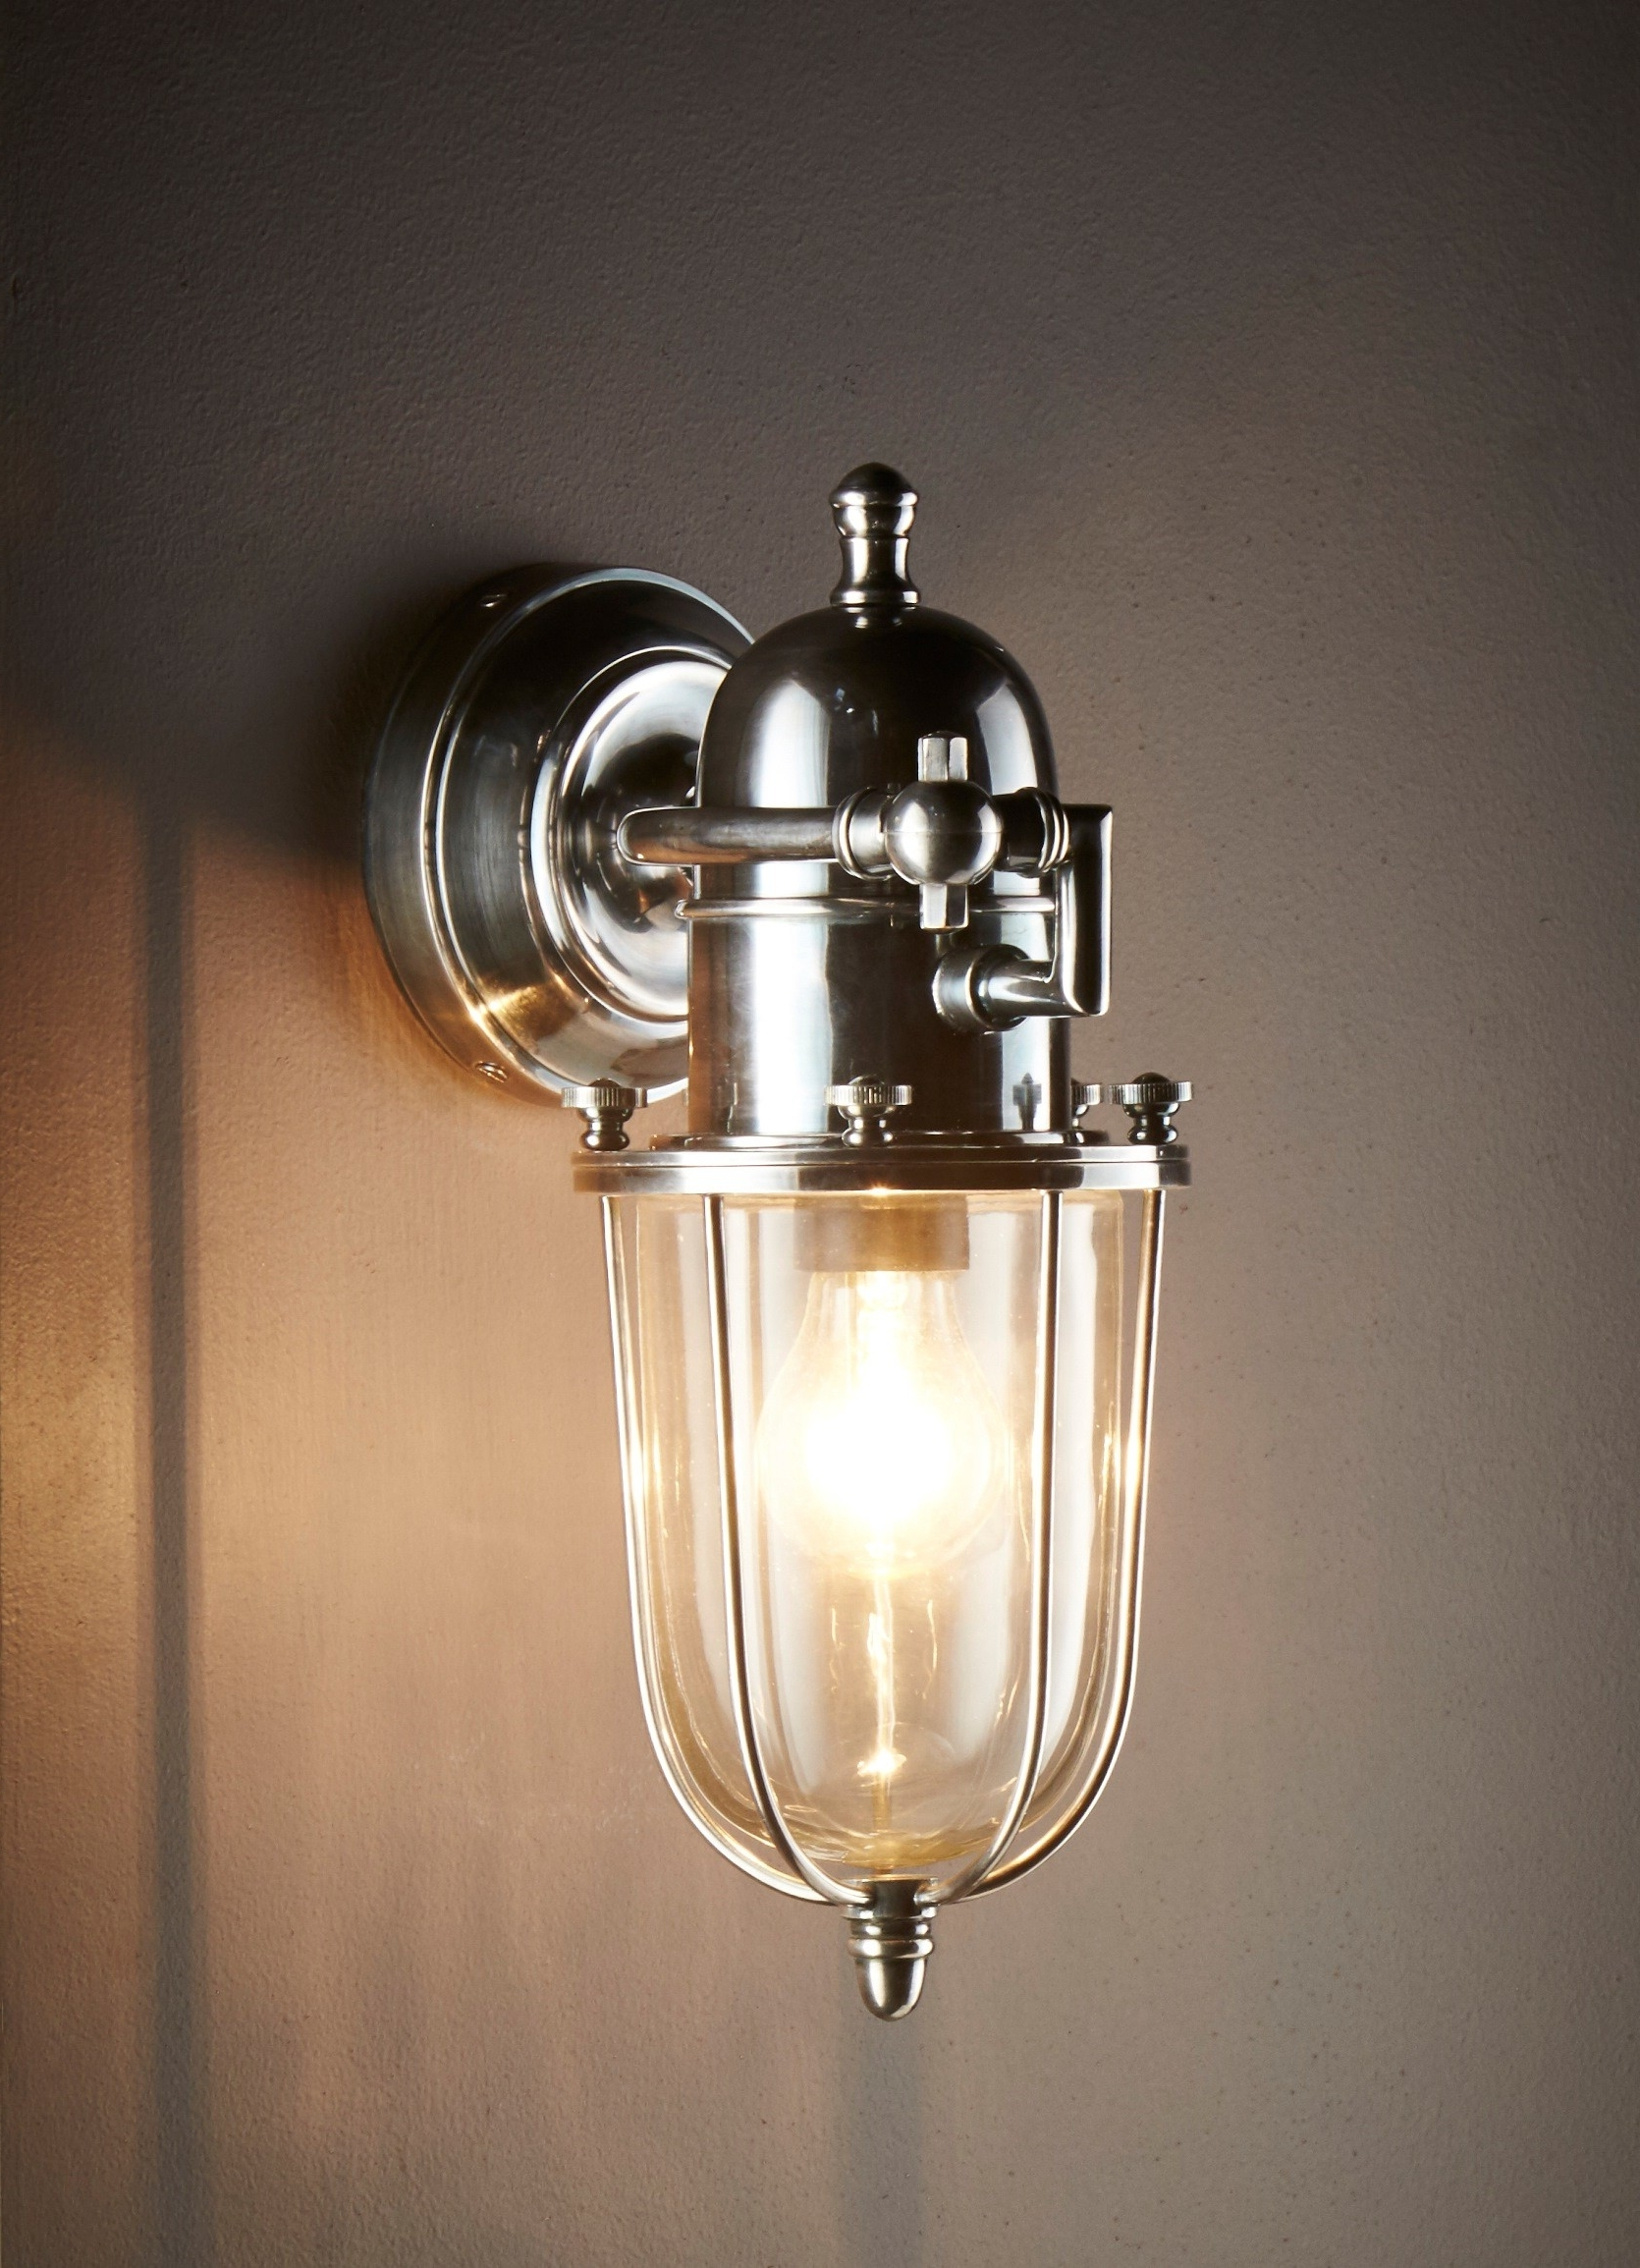 Chapel Wall Lamp Outdoor Silver – Emac & Lawton In Newest Silver Outdoor Wall Lights (View 15 of 20)